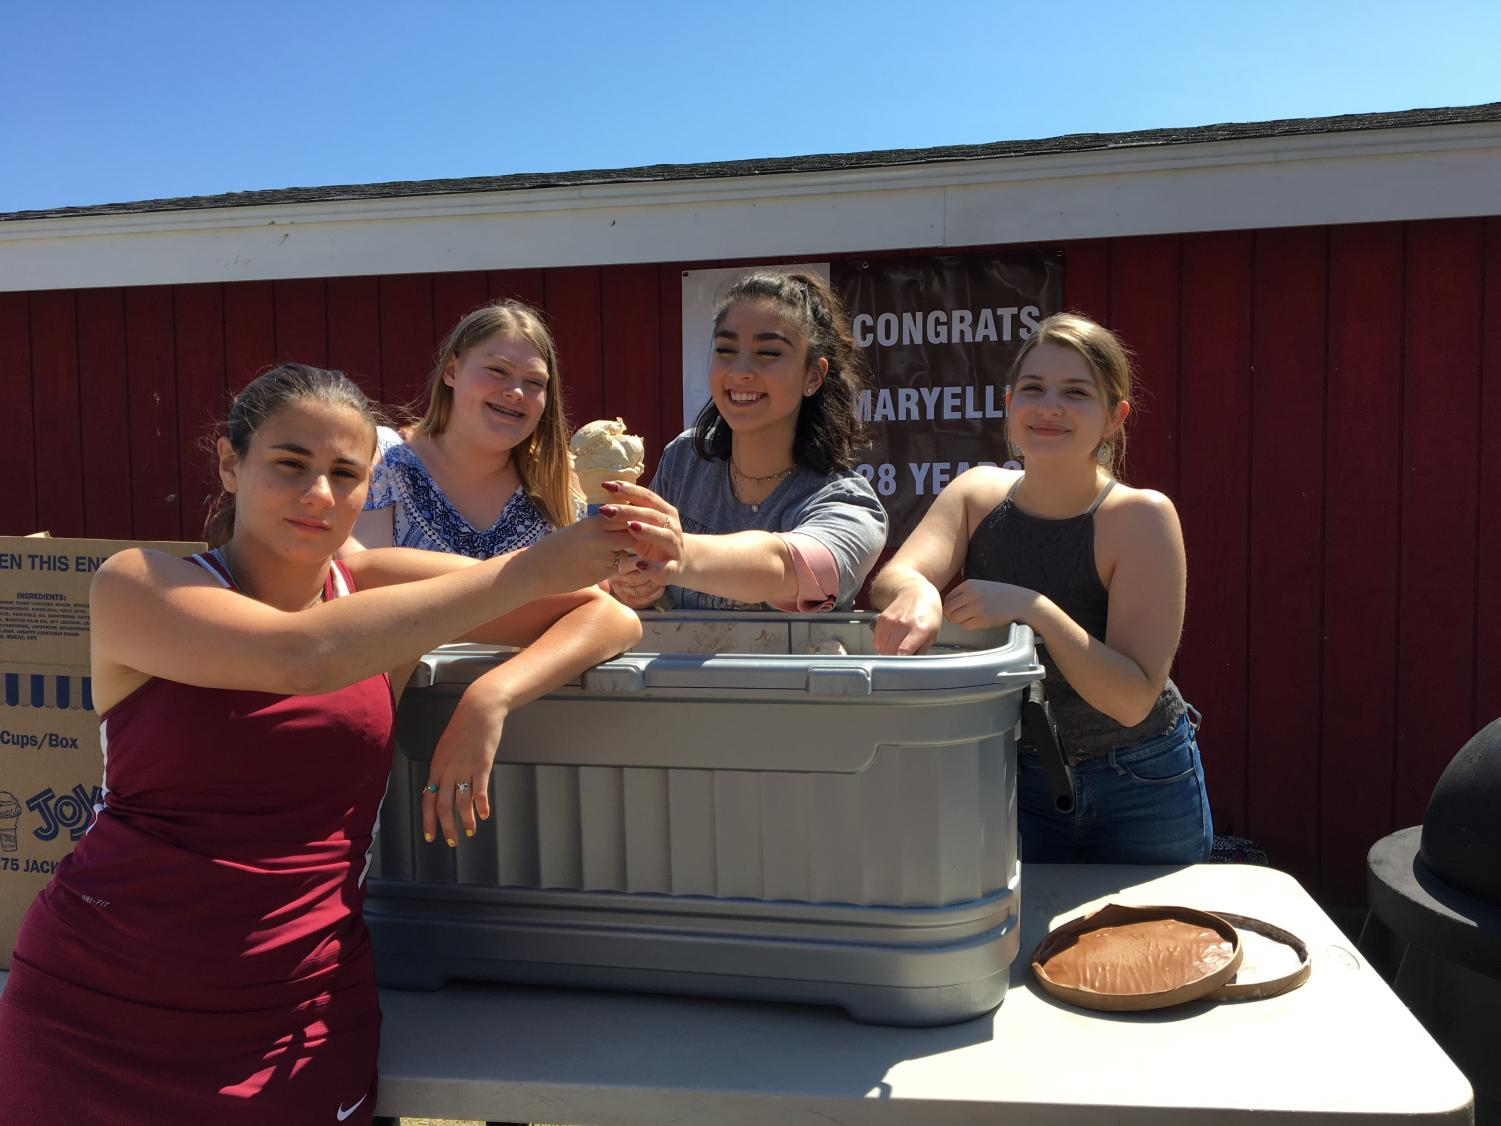 (from left) Allie Sears, Delaney Benchoff, and Rachel Belanger serve junior Tori Carini ice cream at Zielksi's retirement party